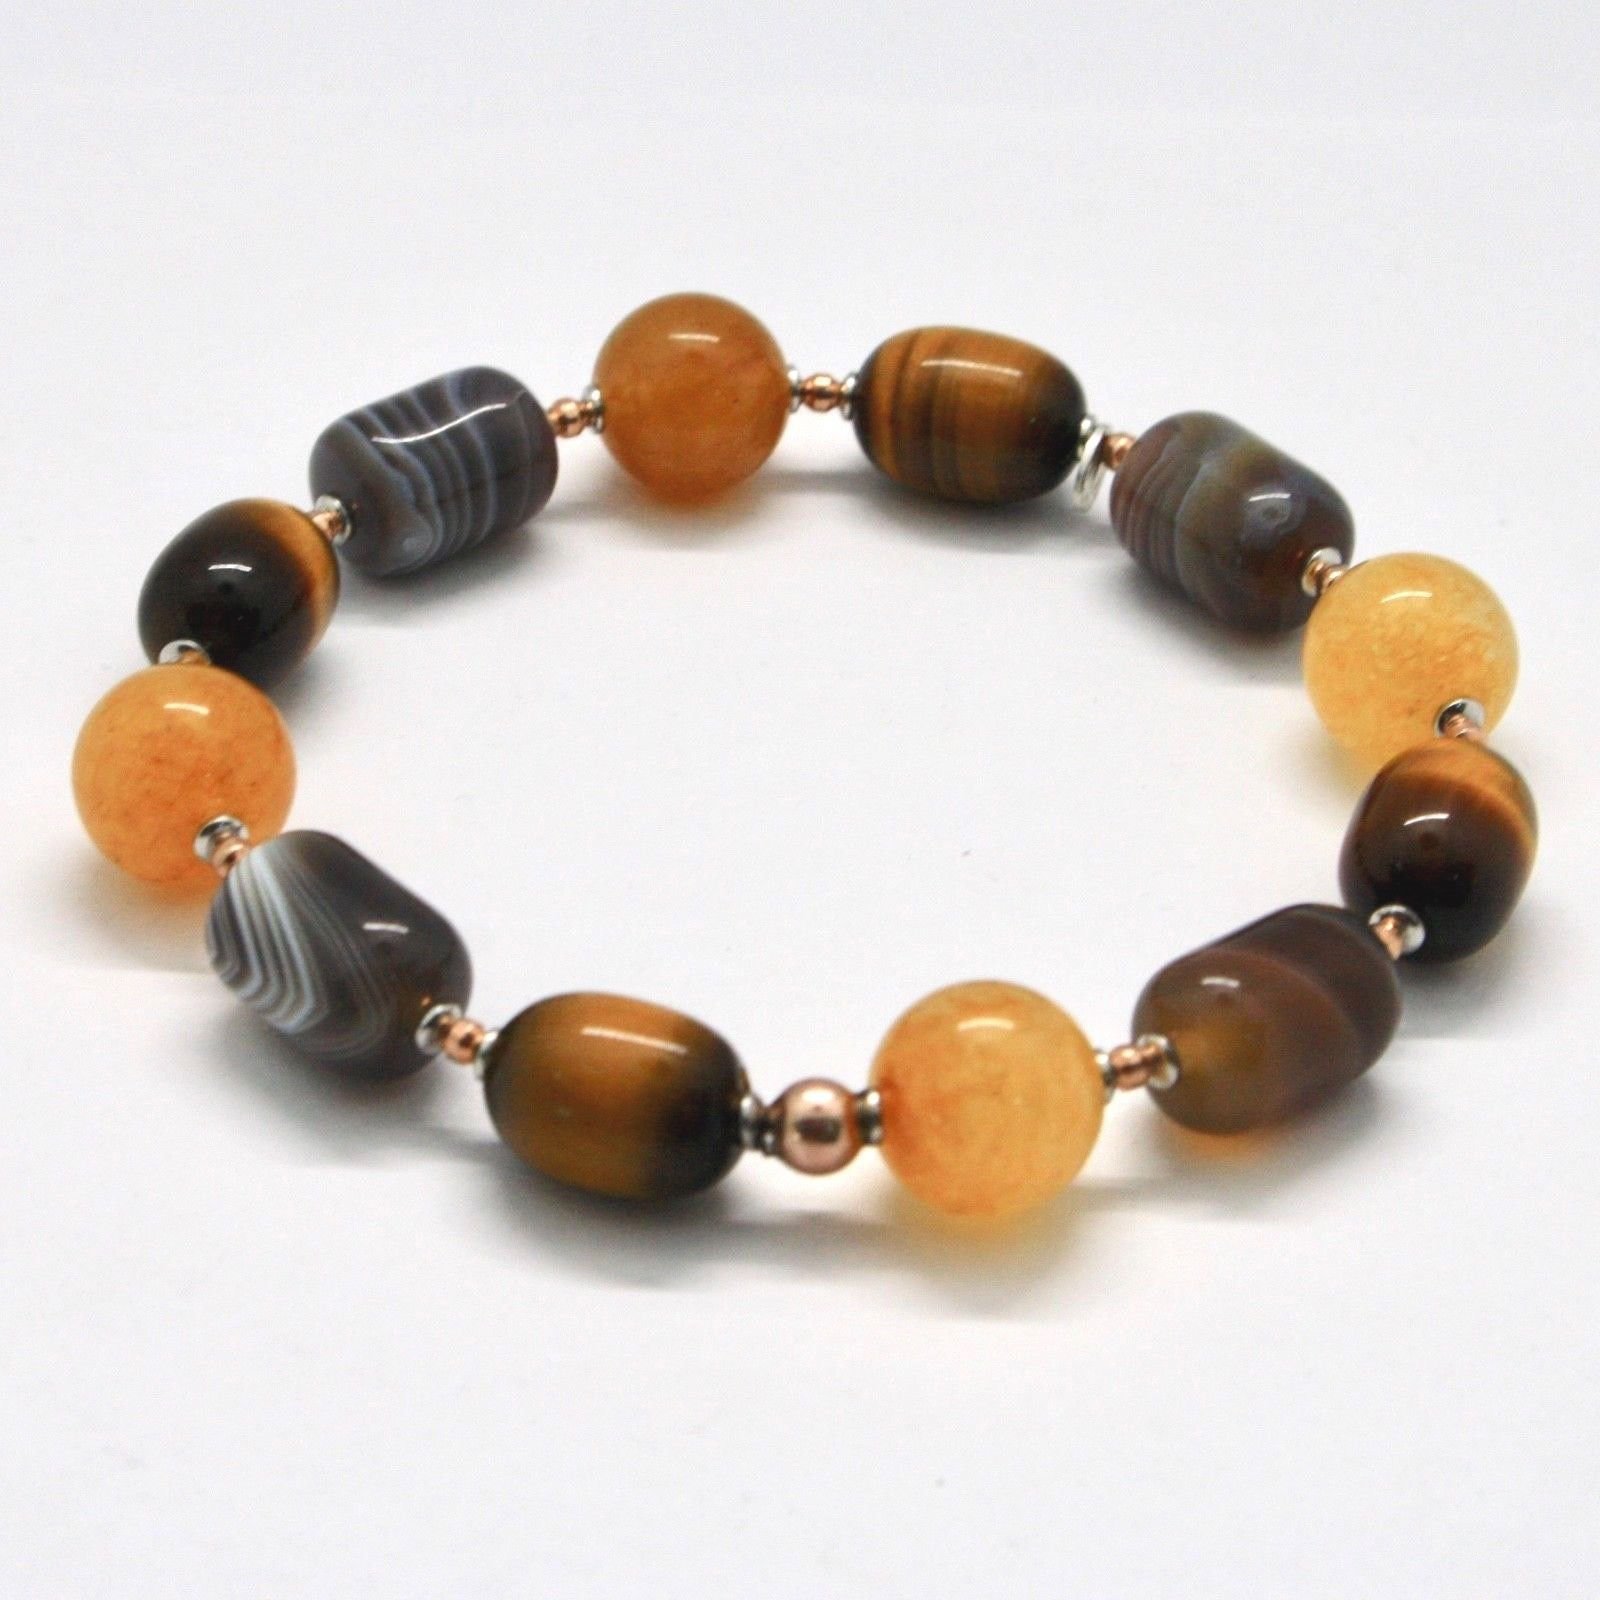 SILVER 925 BRACELET LAMINATED ROSE GOLD WITH TIGER'S EYE GIADA CHALCEDONY